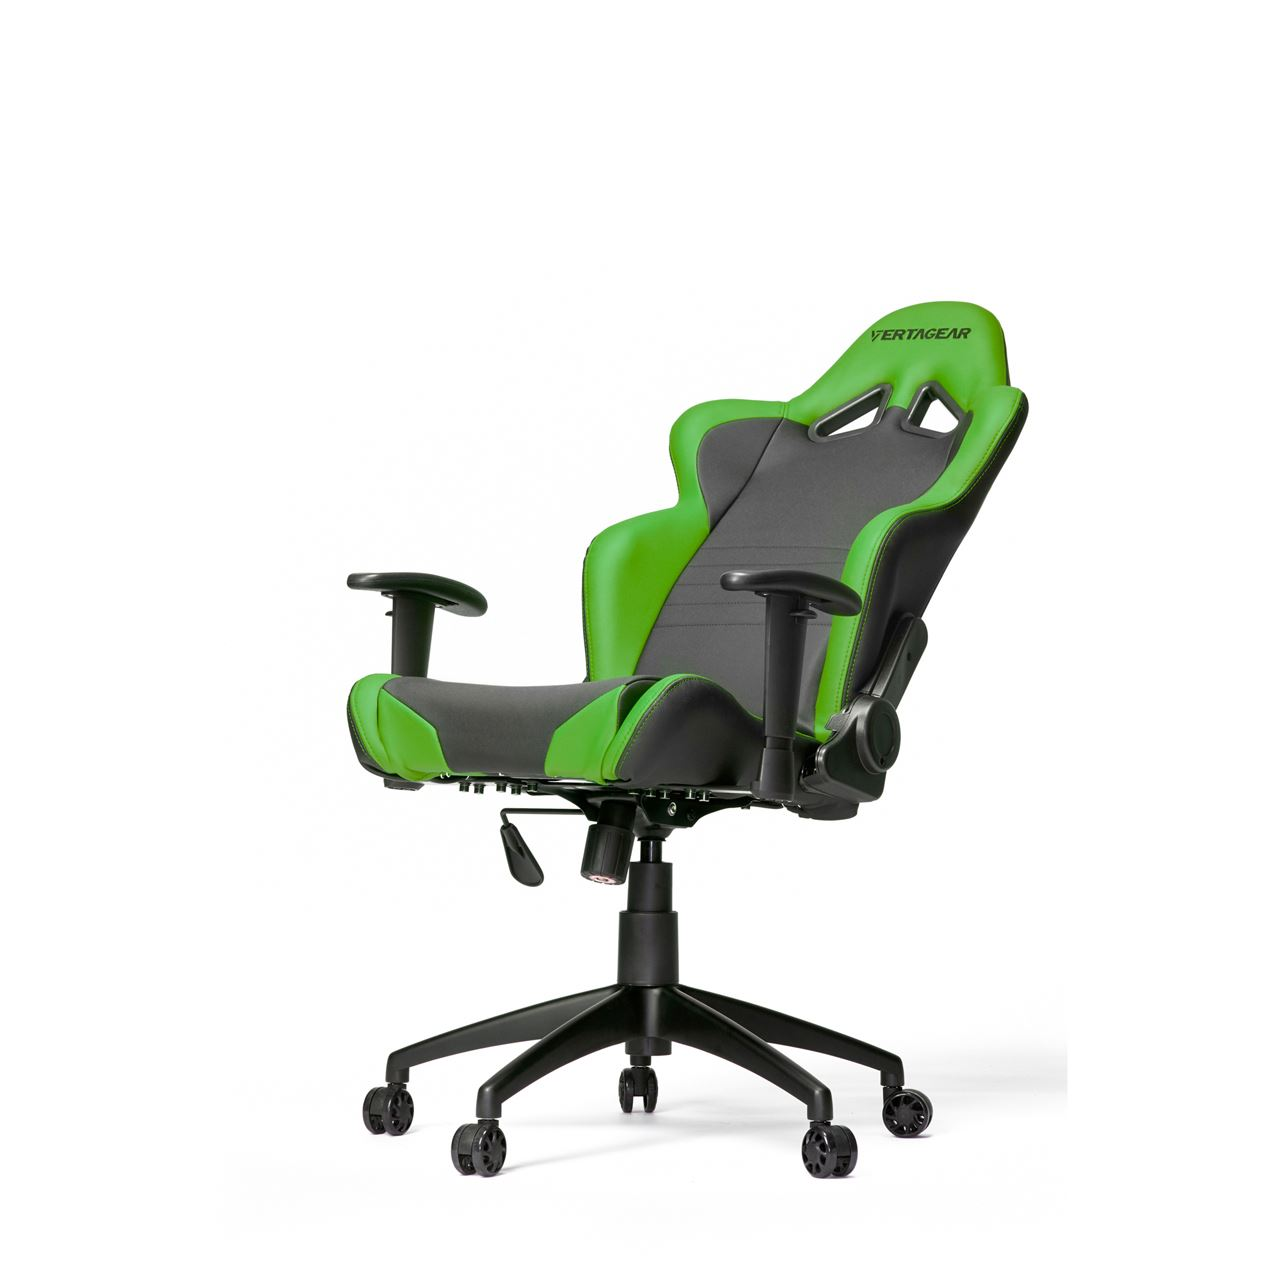 Seat Grün Vertagear Racing Series Sl2000 Gaming Chair Schwarz Grün